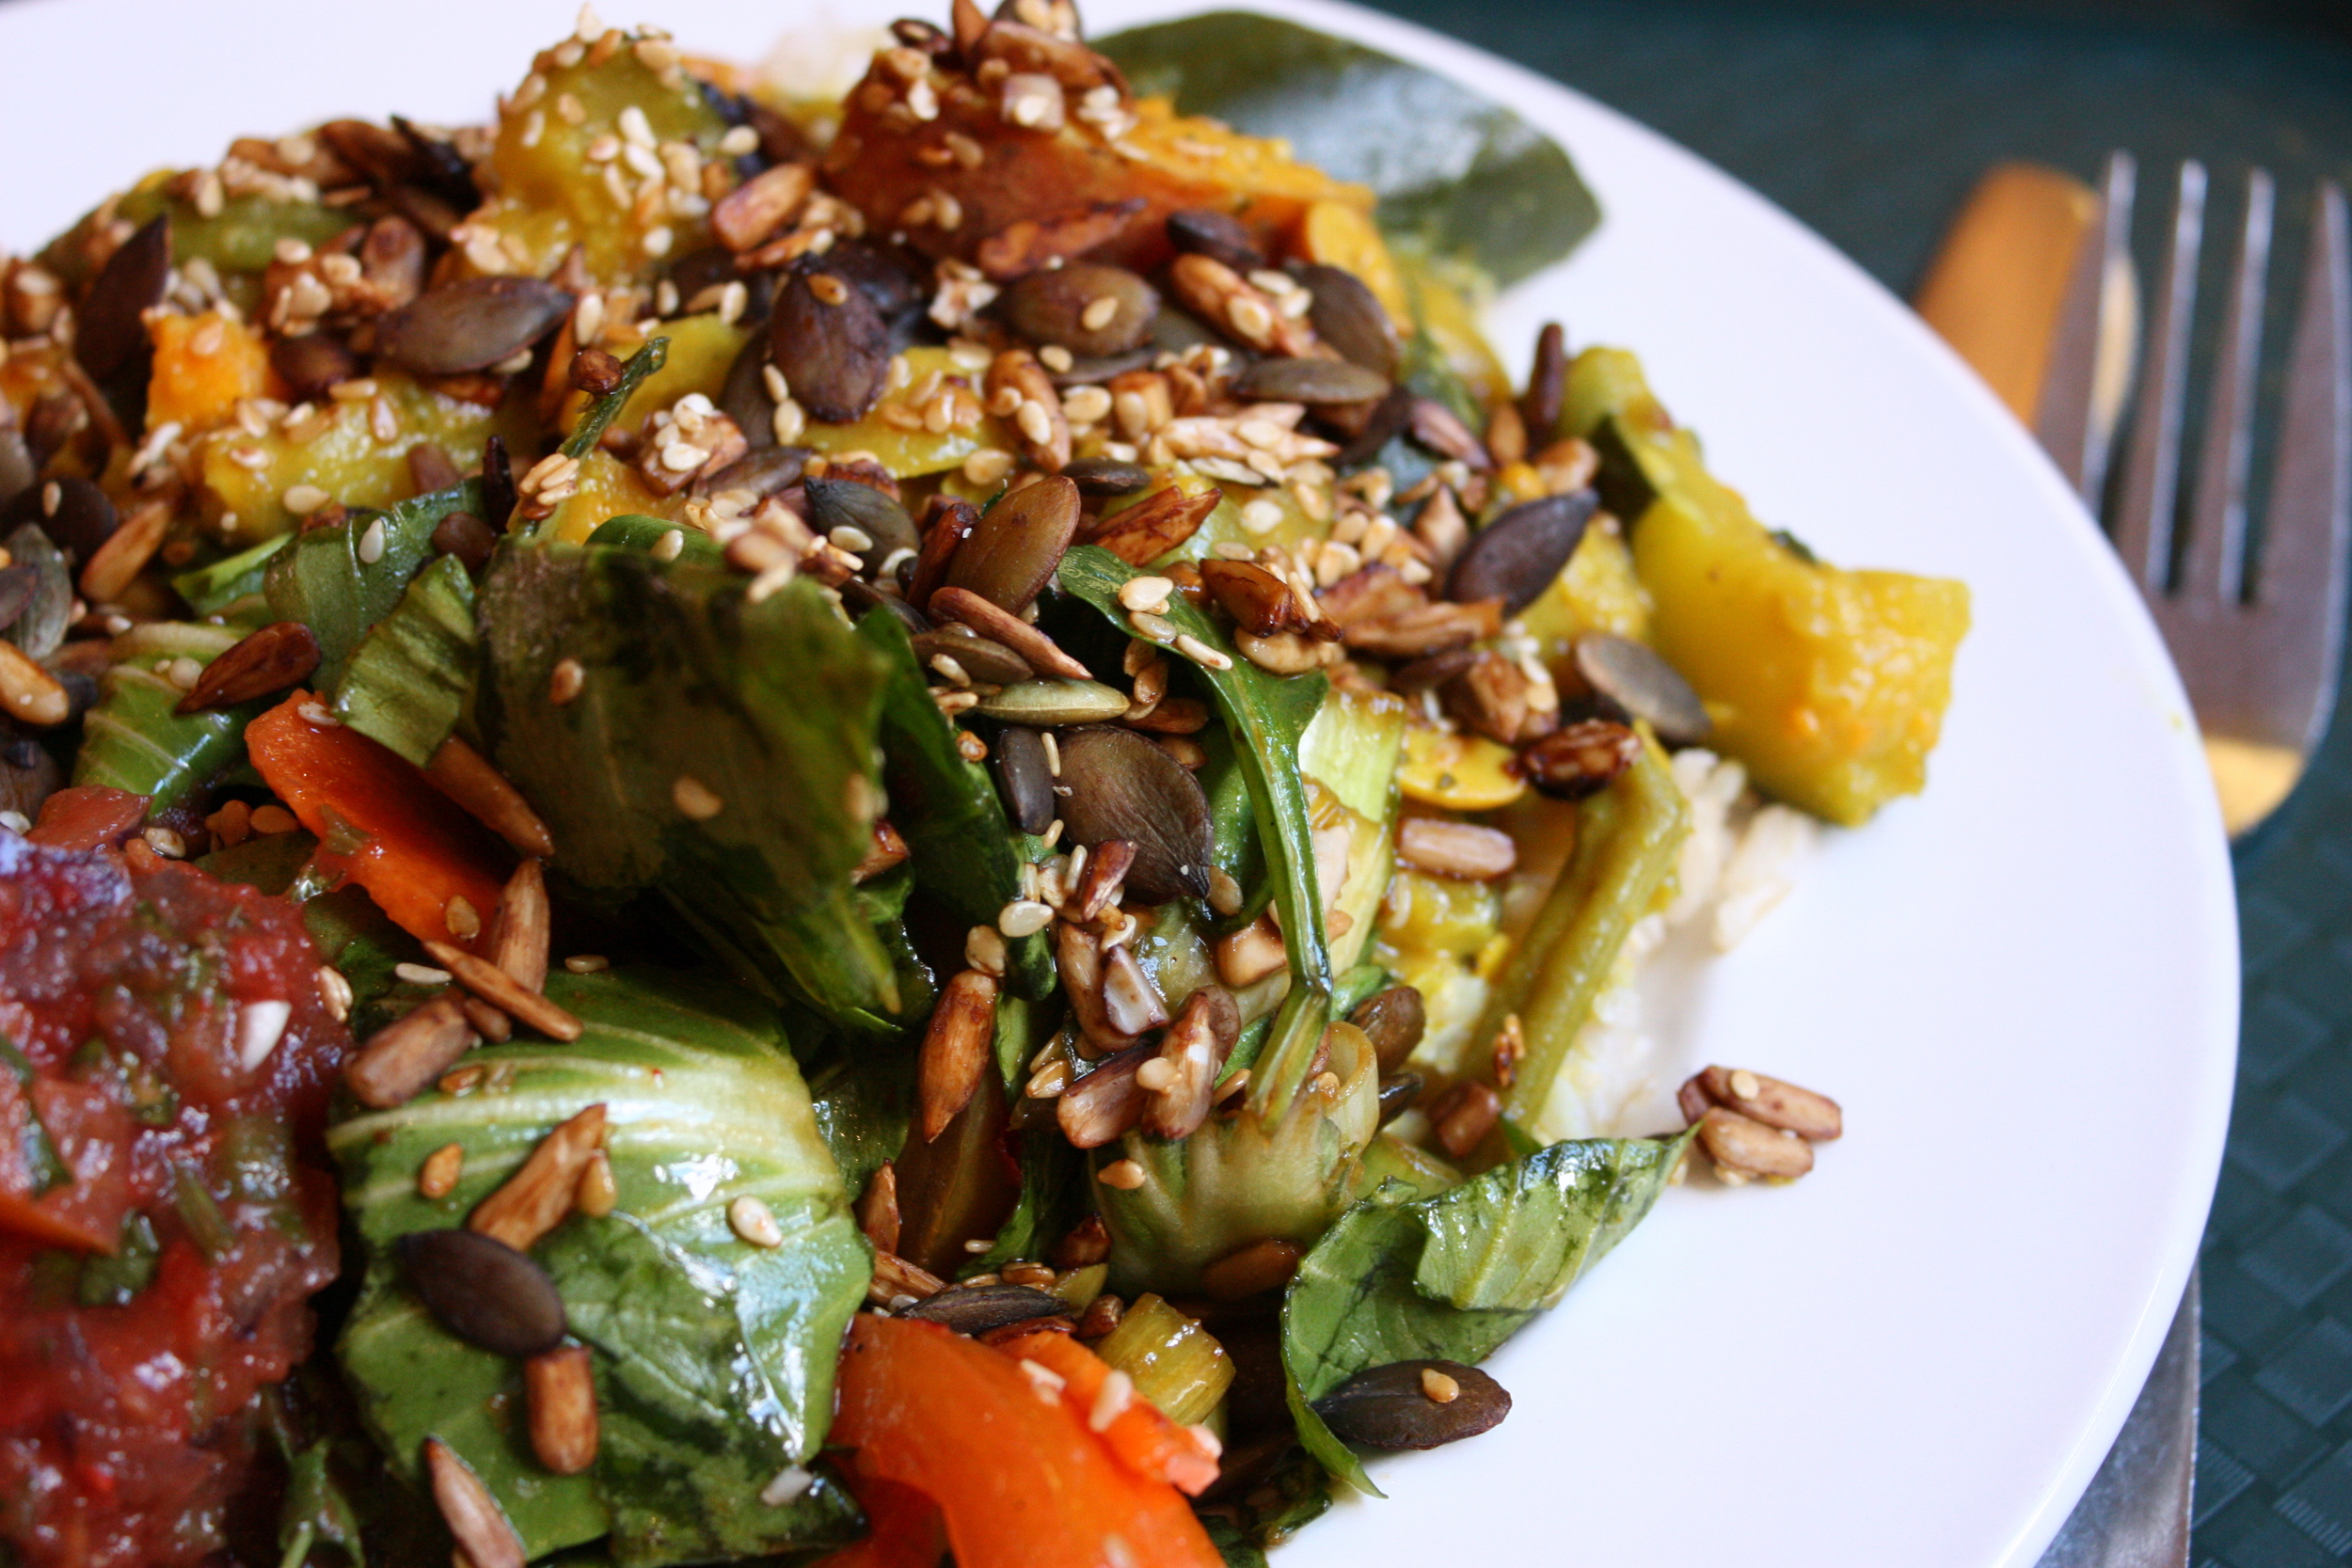 vegan food at the Laines